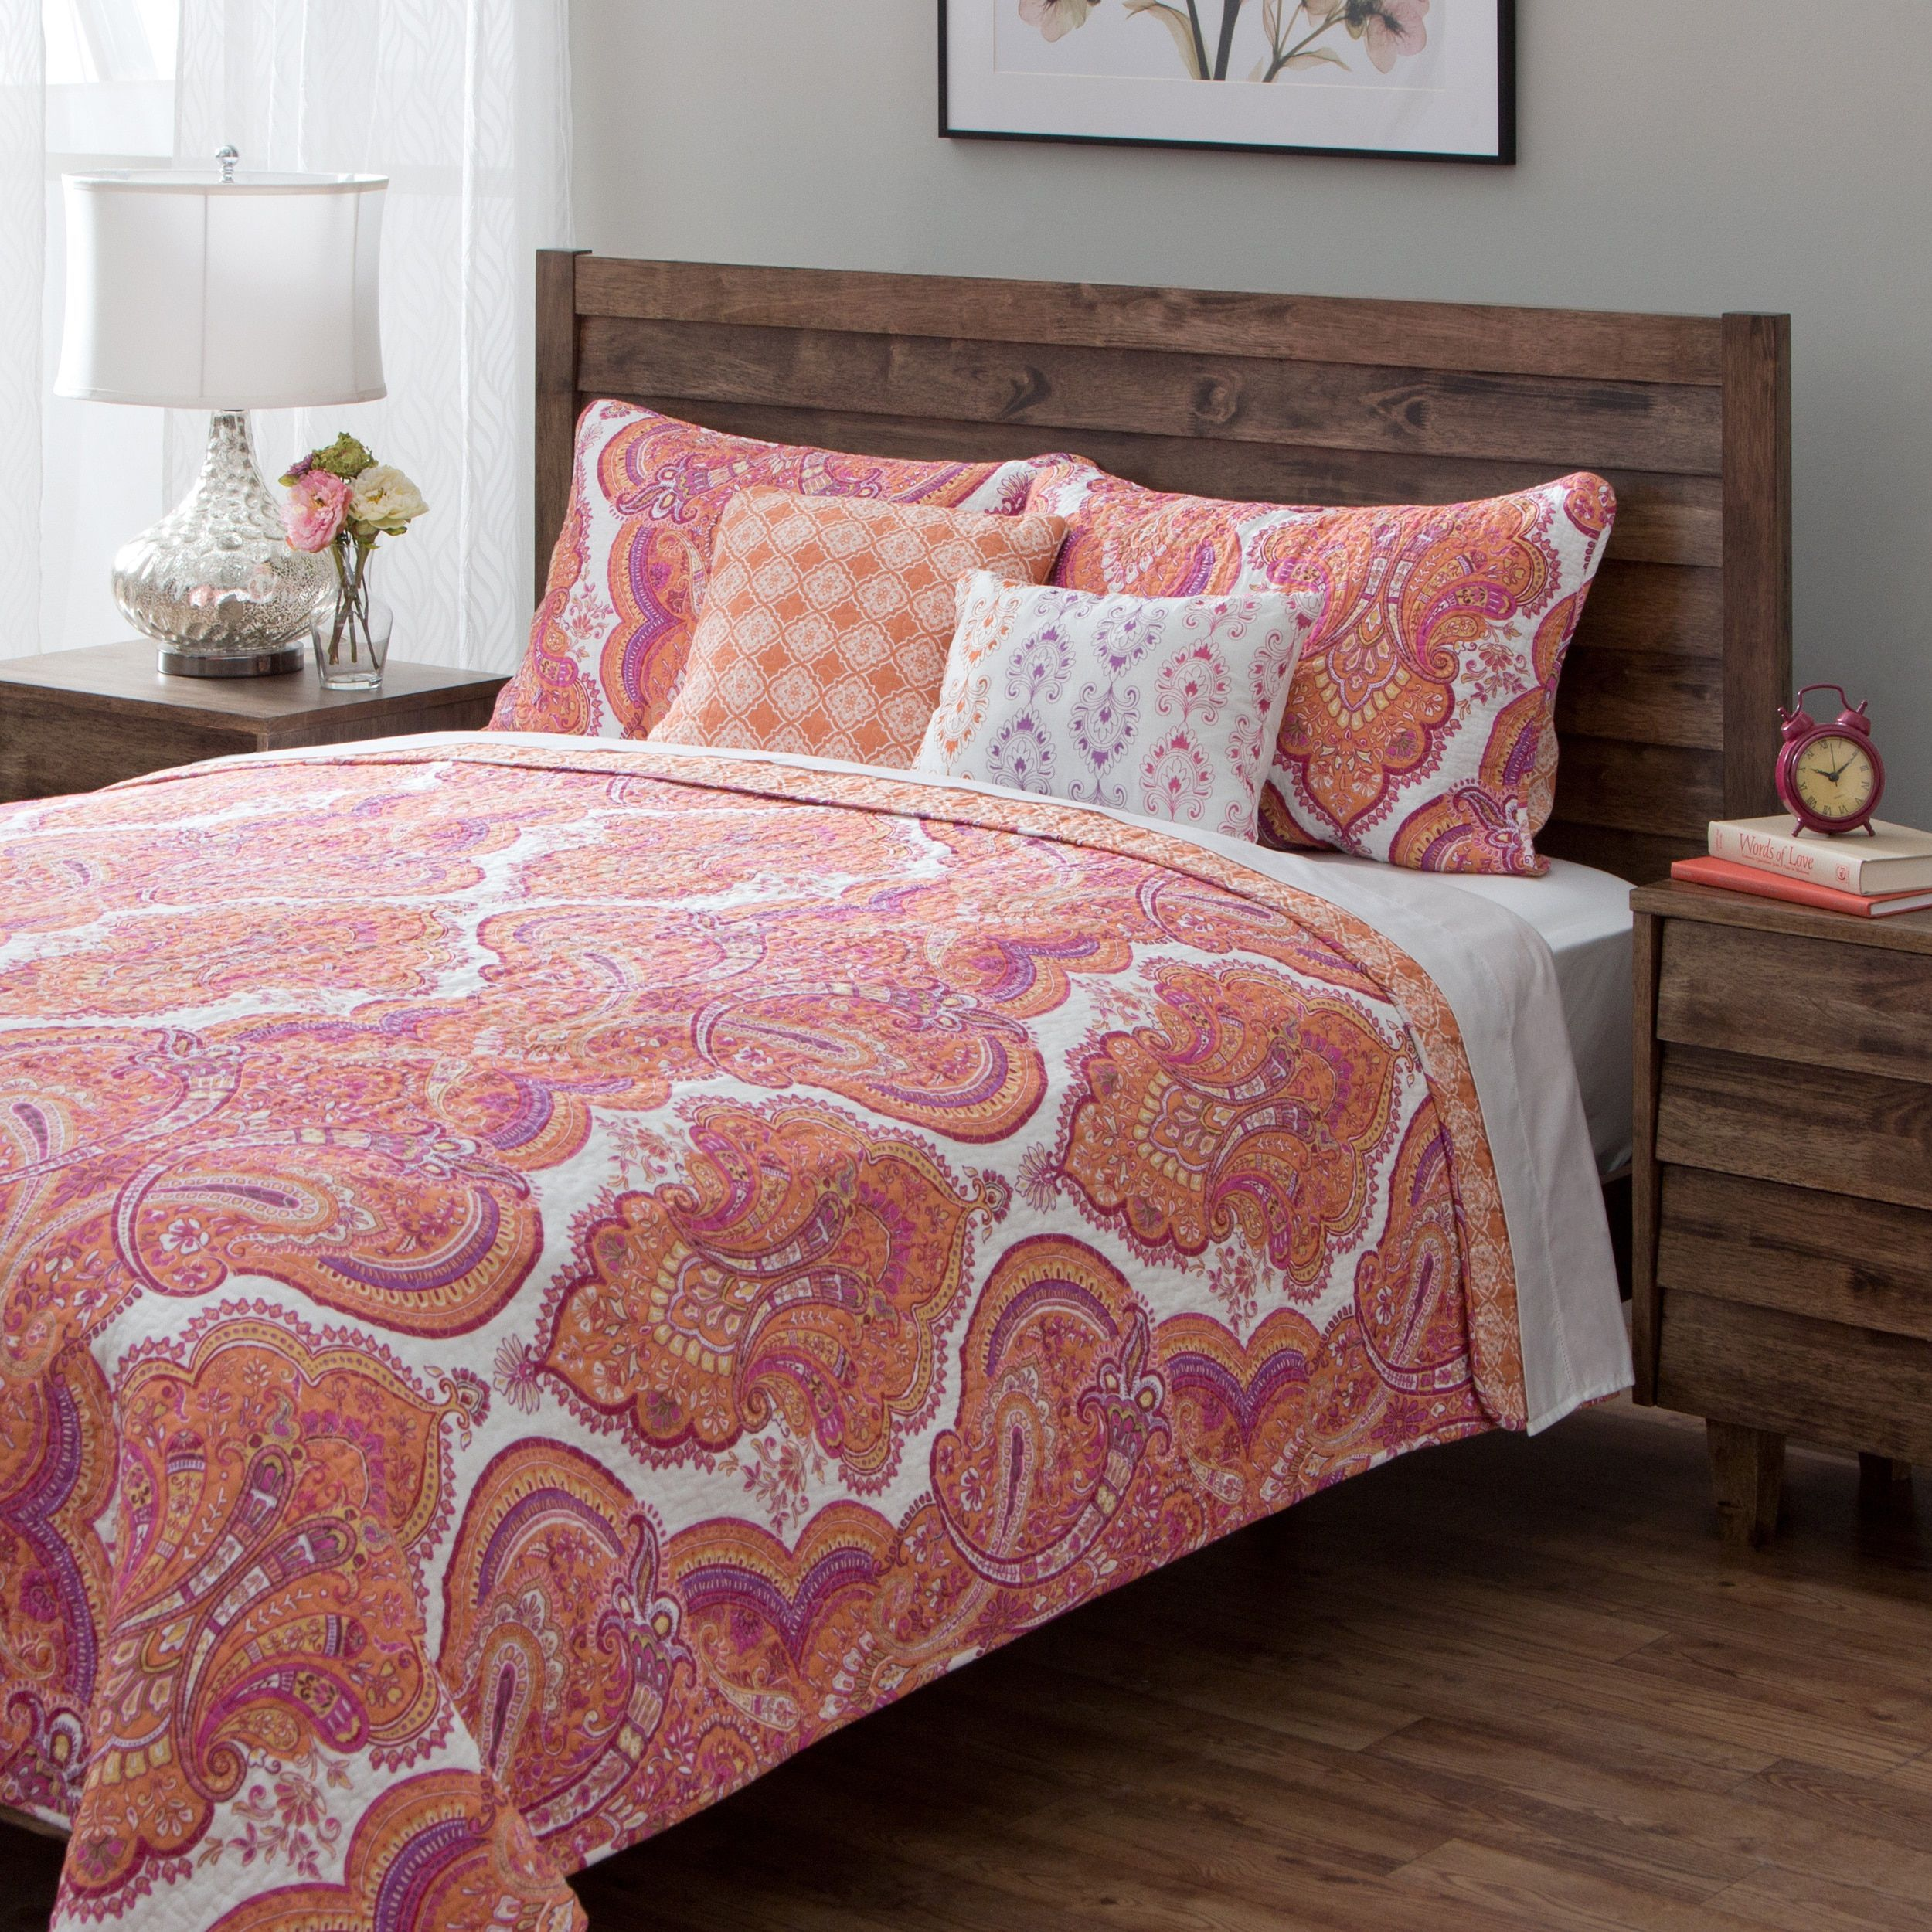 Online Shopping Bedding Furniture Electronics Jewelry Clothing More Housse De Couette Shopping Housses